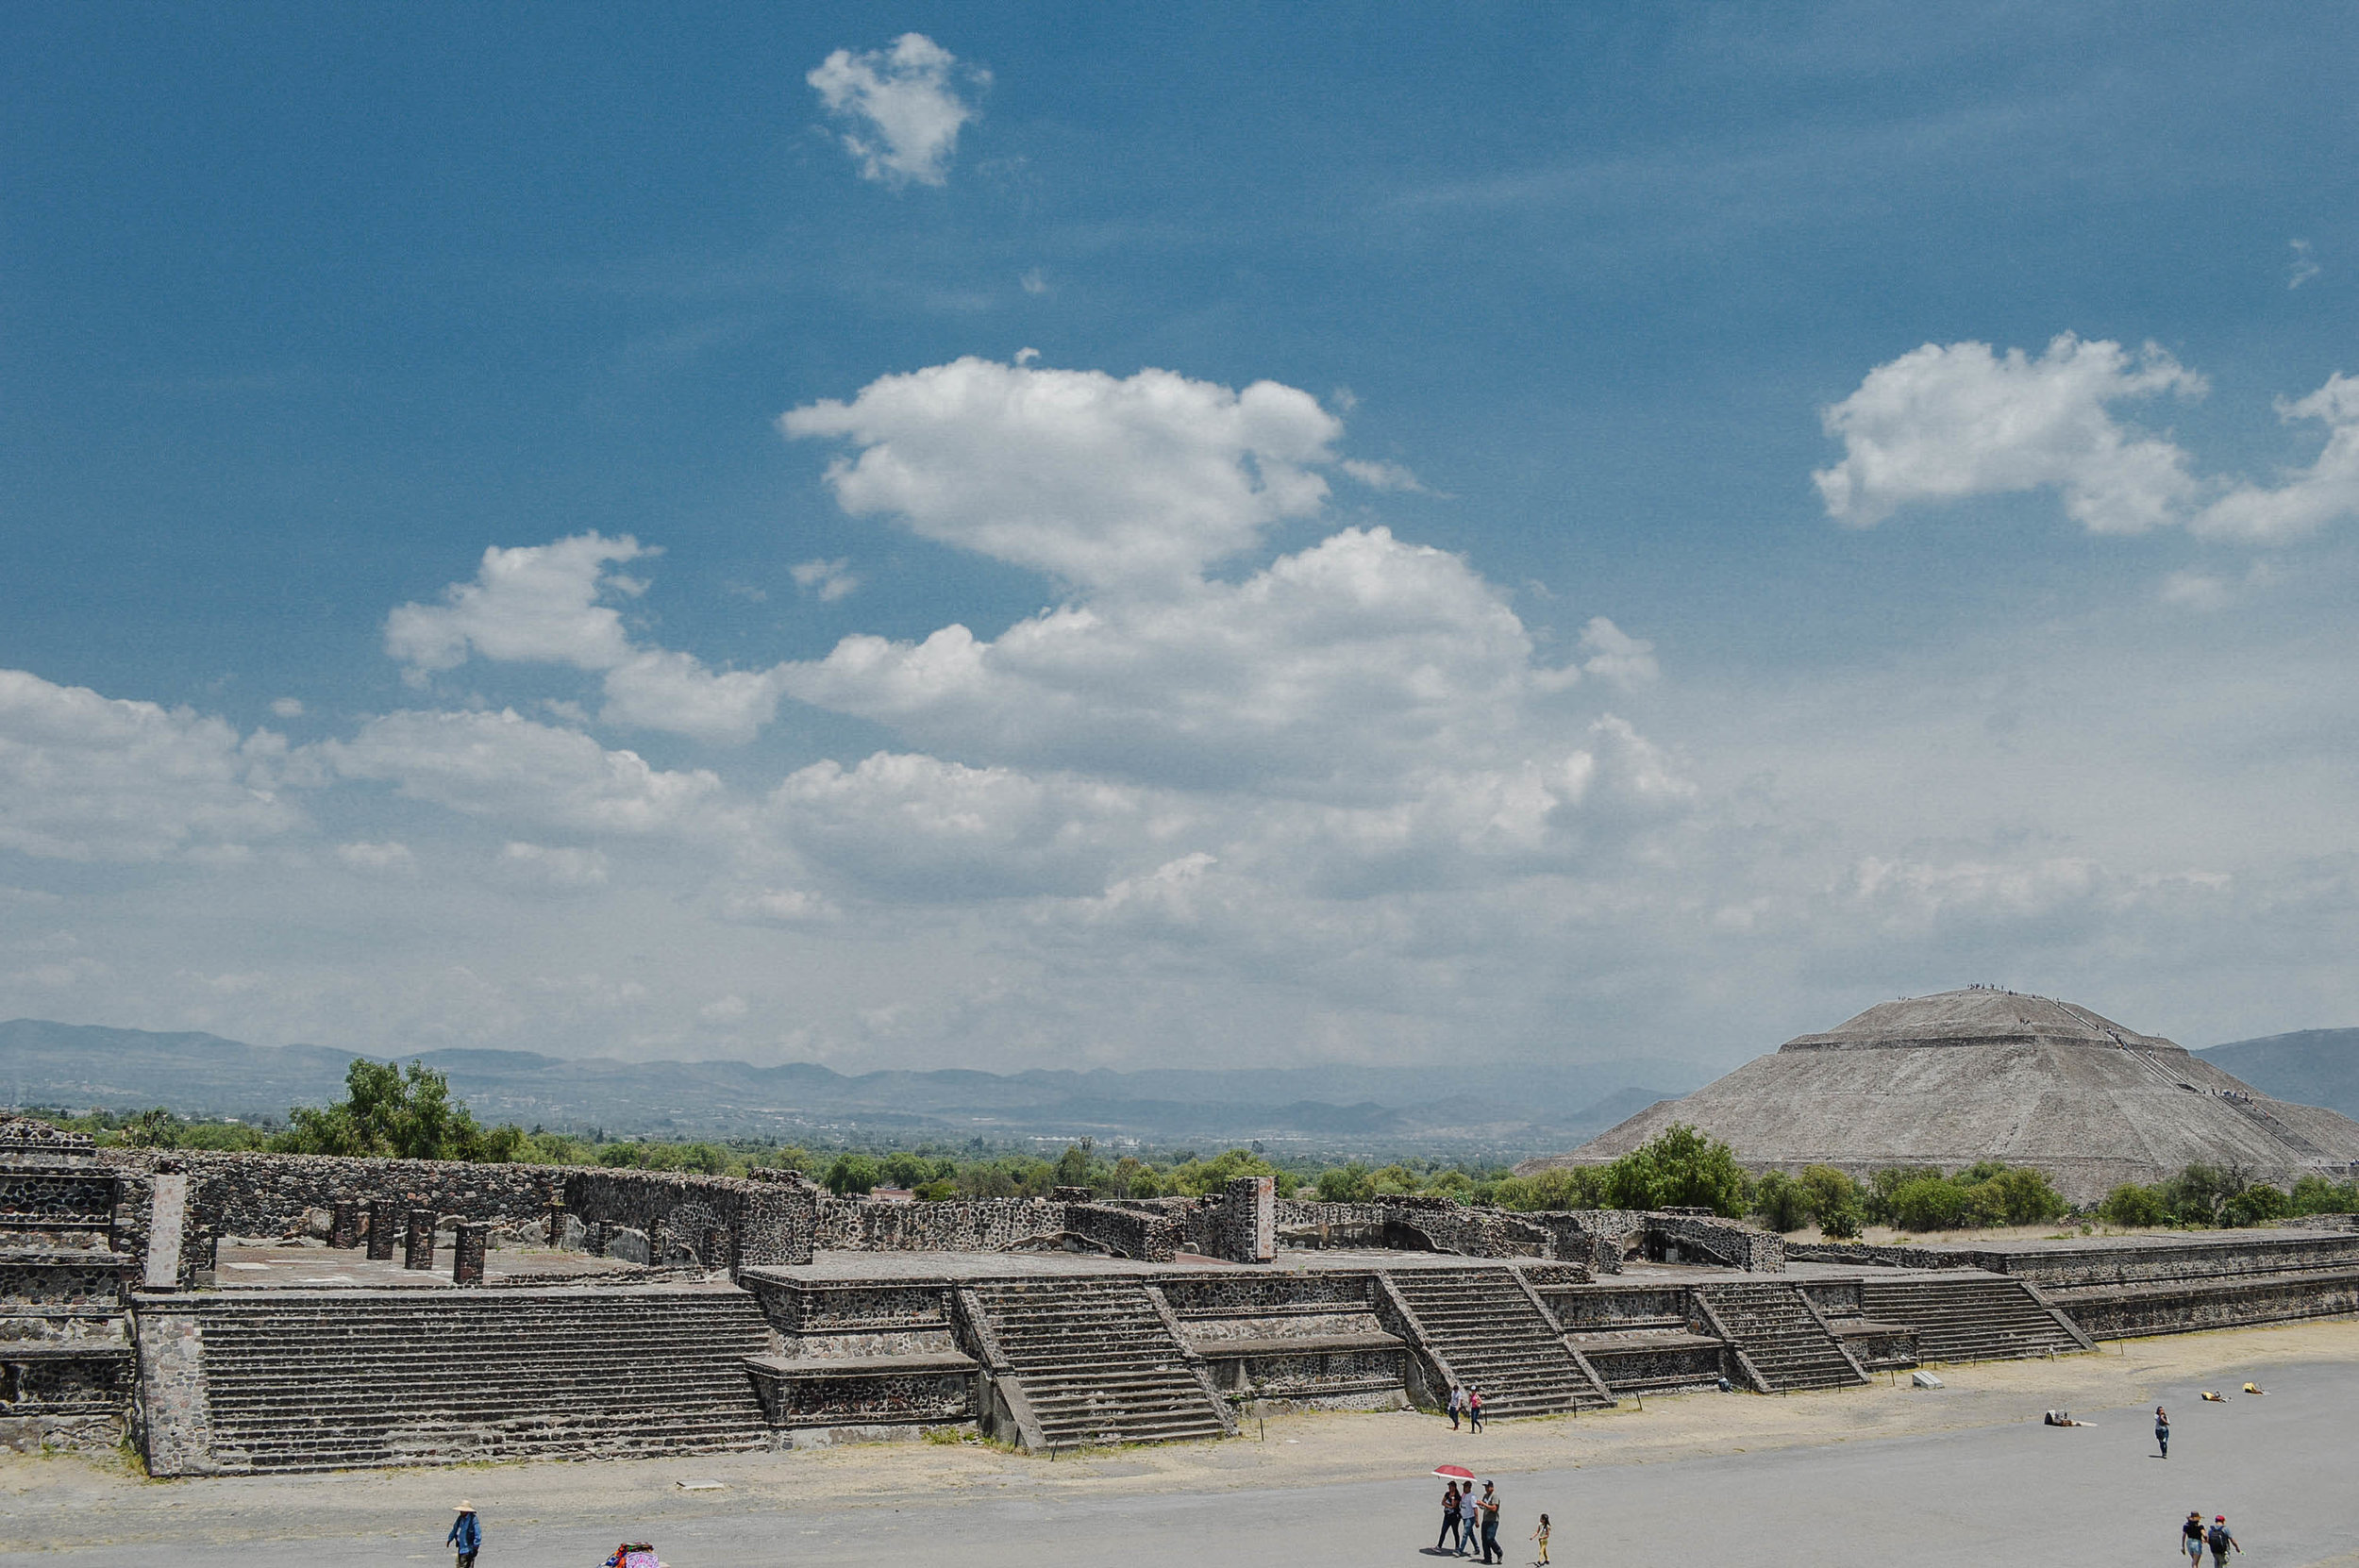 Teotihuacan Pyramids: 8 Fun things to do on your trip to Mexico City! You don't want to miss these on your trip to CDMX. goseekexplore.com